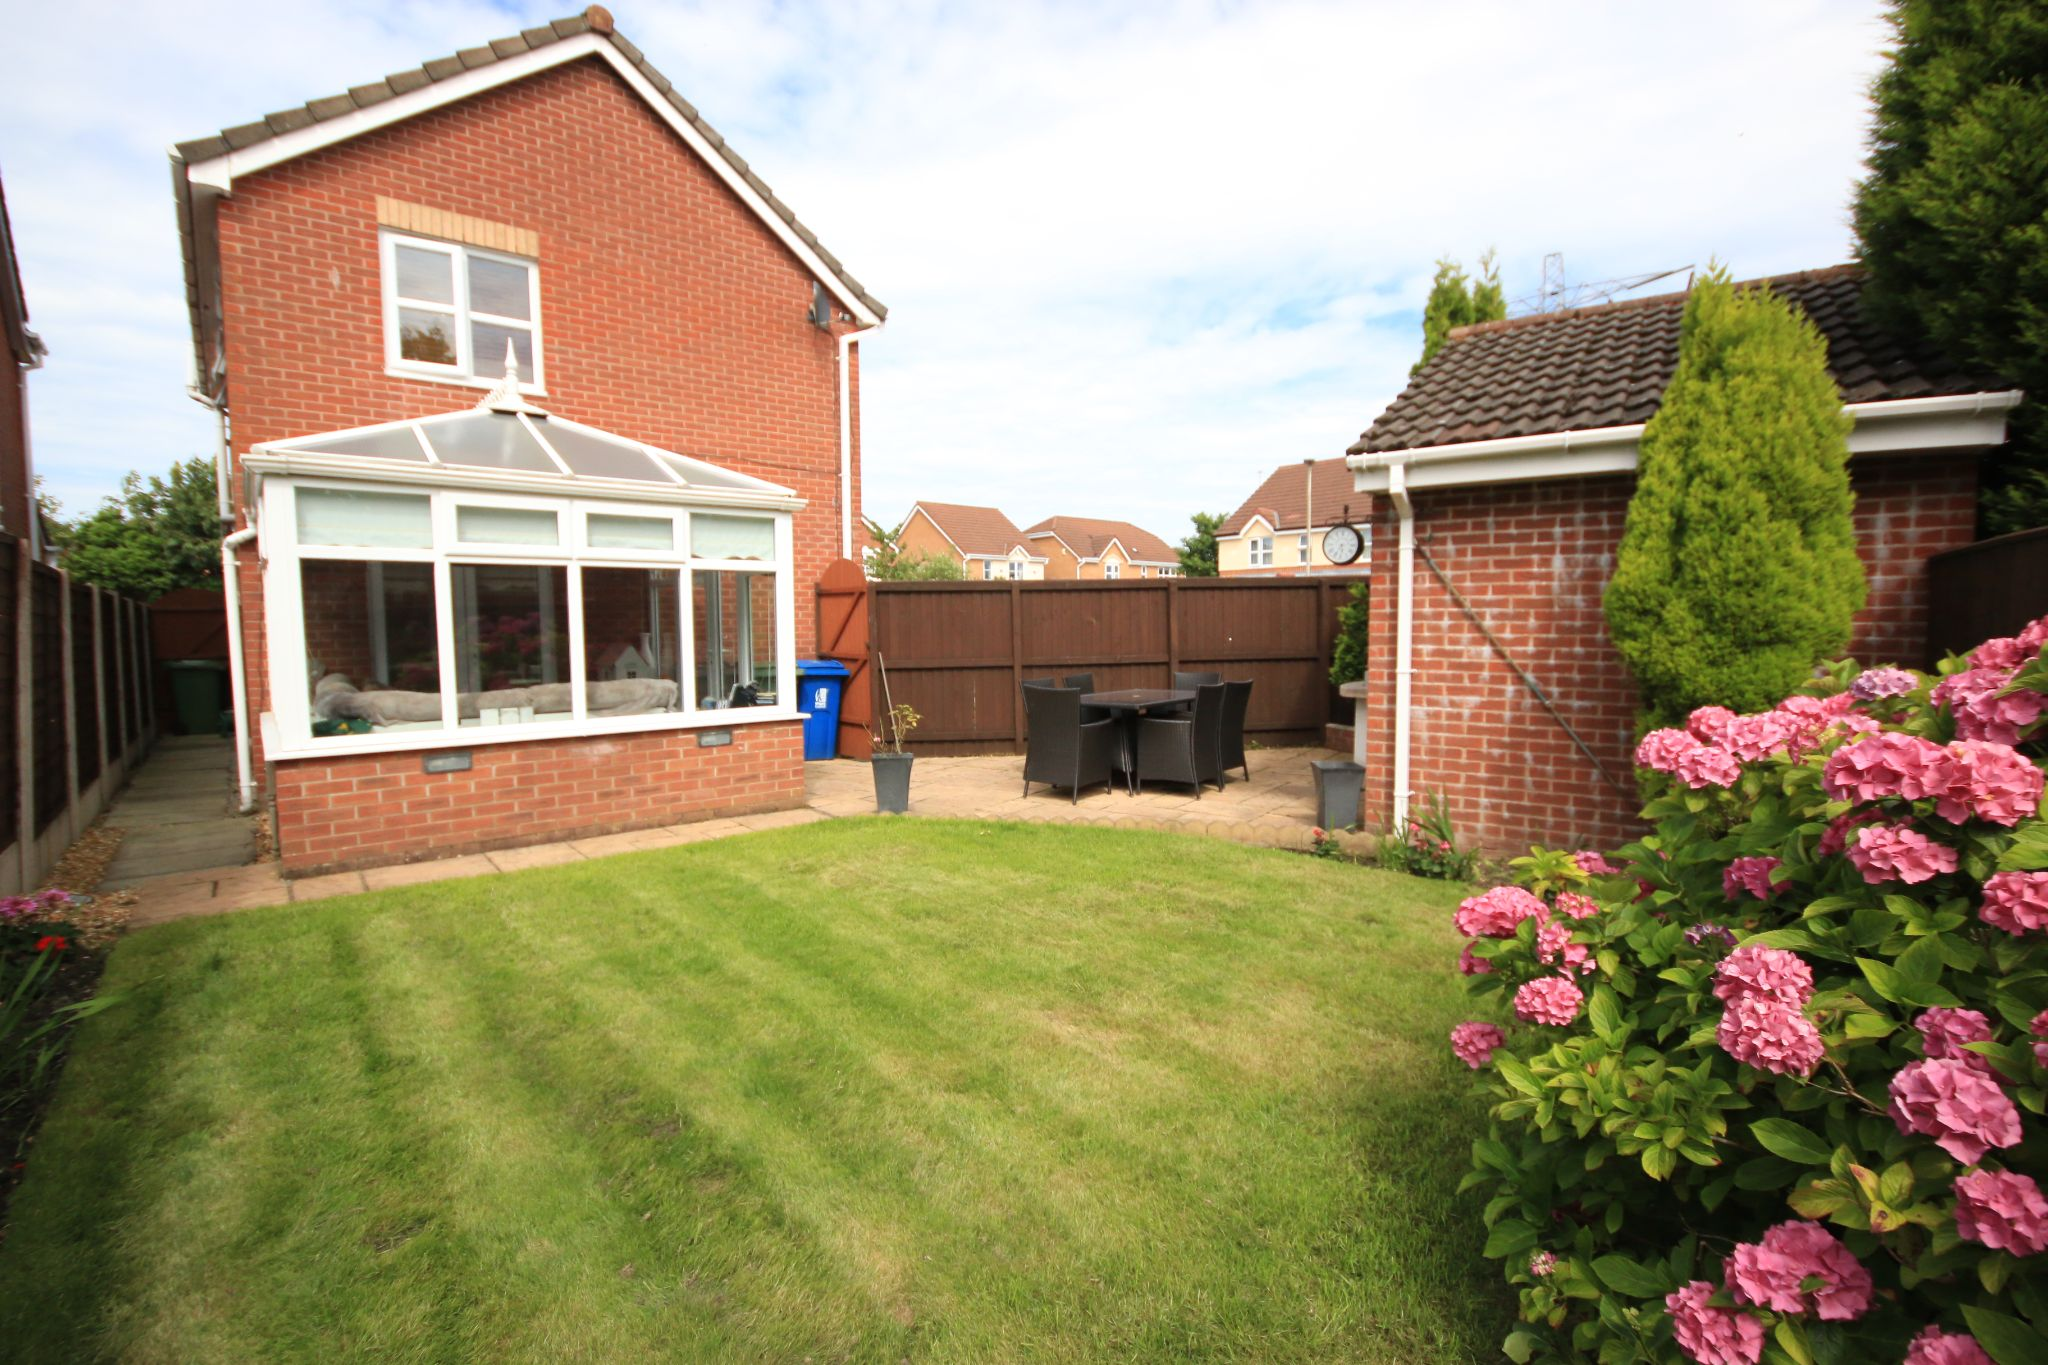 3 Bedroom Detached House For Sale - Photograph 21